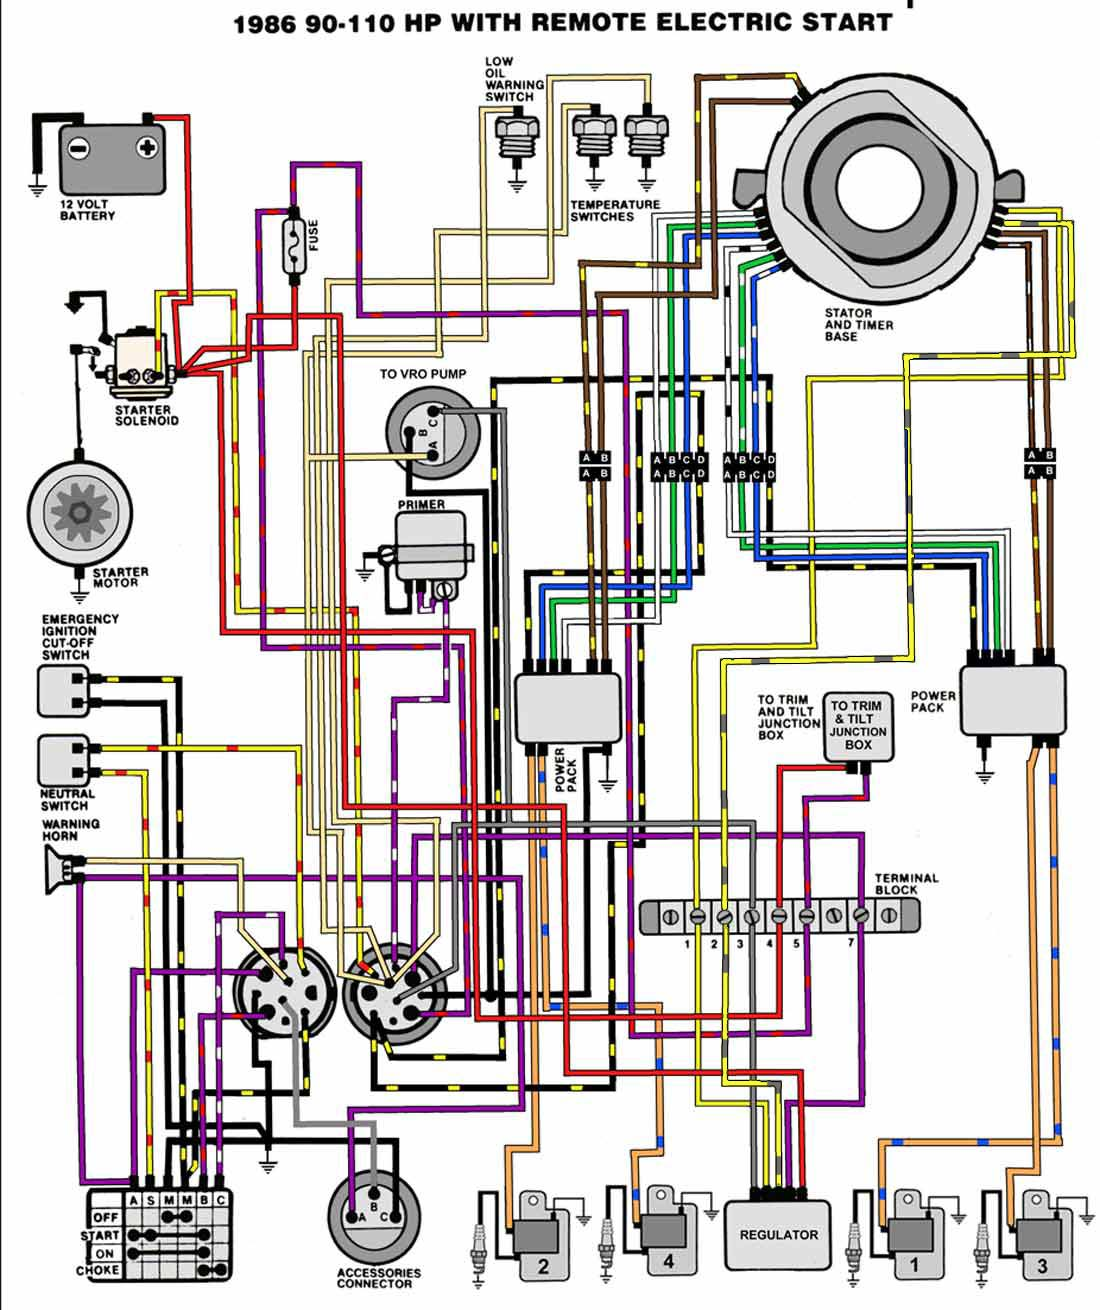 41F55 Force 90 Hp Wiring Diagram | Wiring LibraryWiring Library